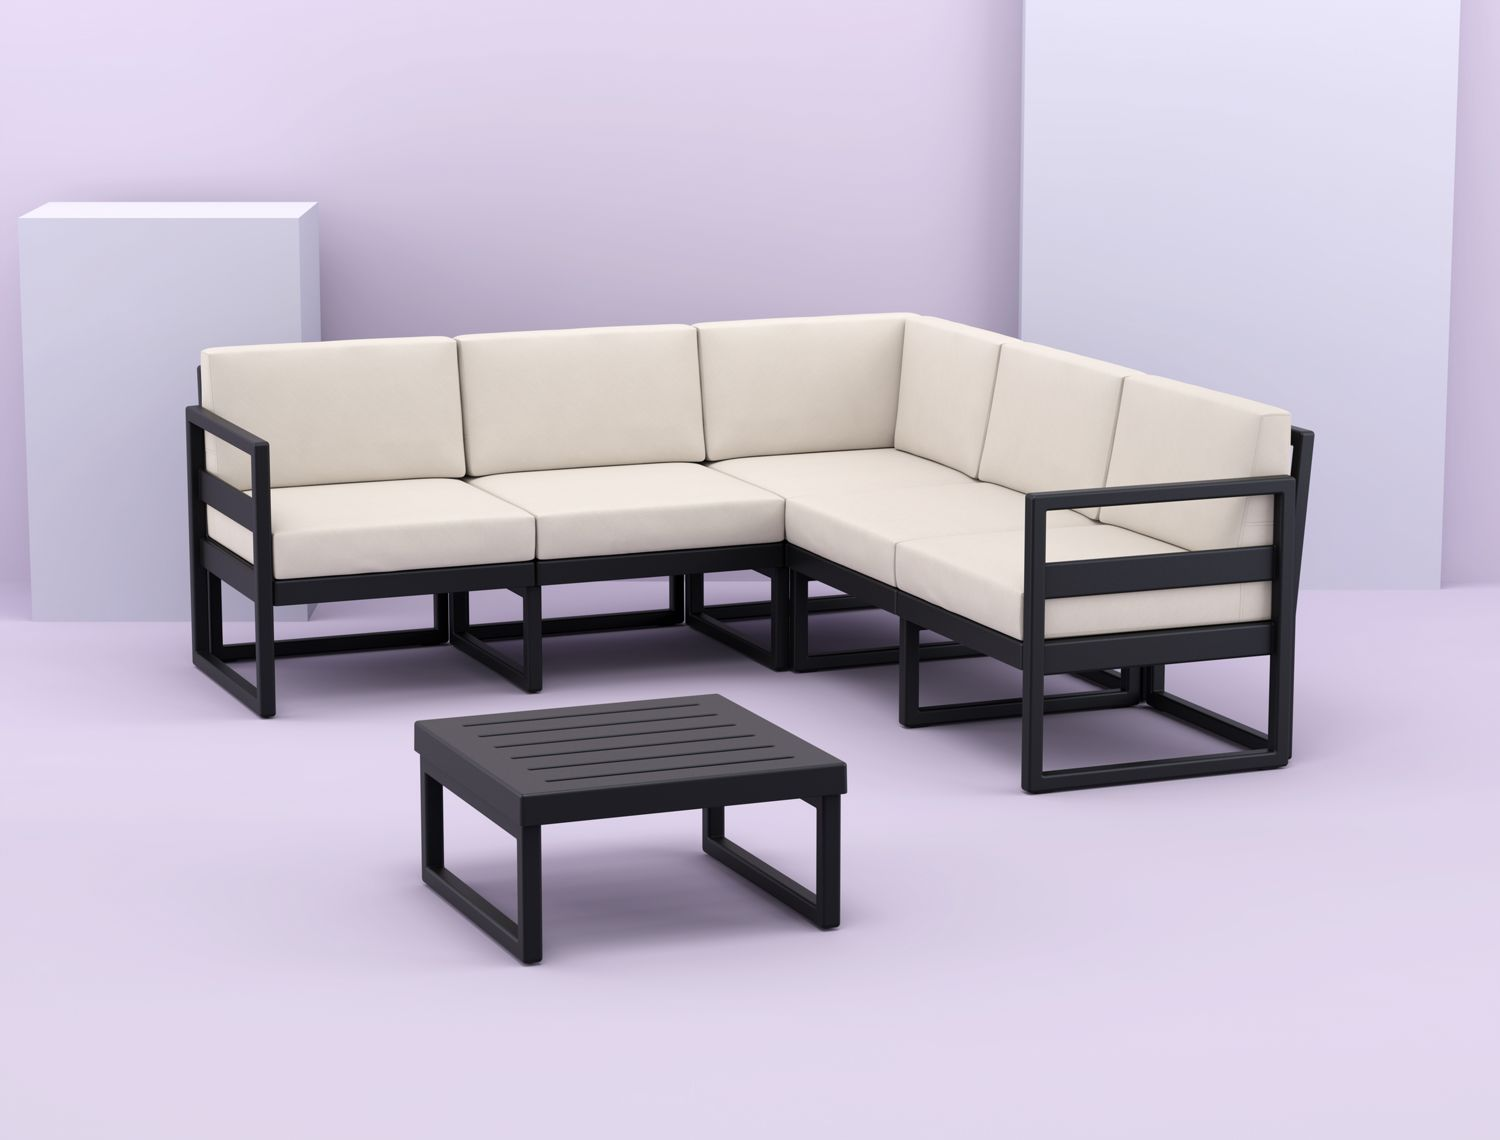 Mykonos Corner Sectional 5 Person Lounge Set White with Sunbrella Charcoal Cushion ISP134-WHI-CCH - 1